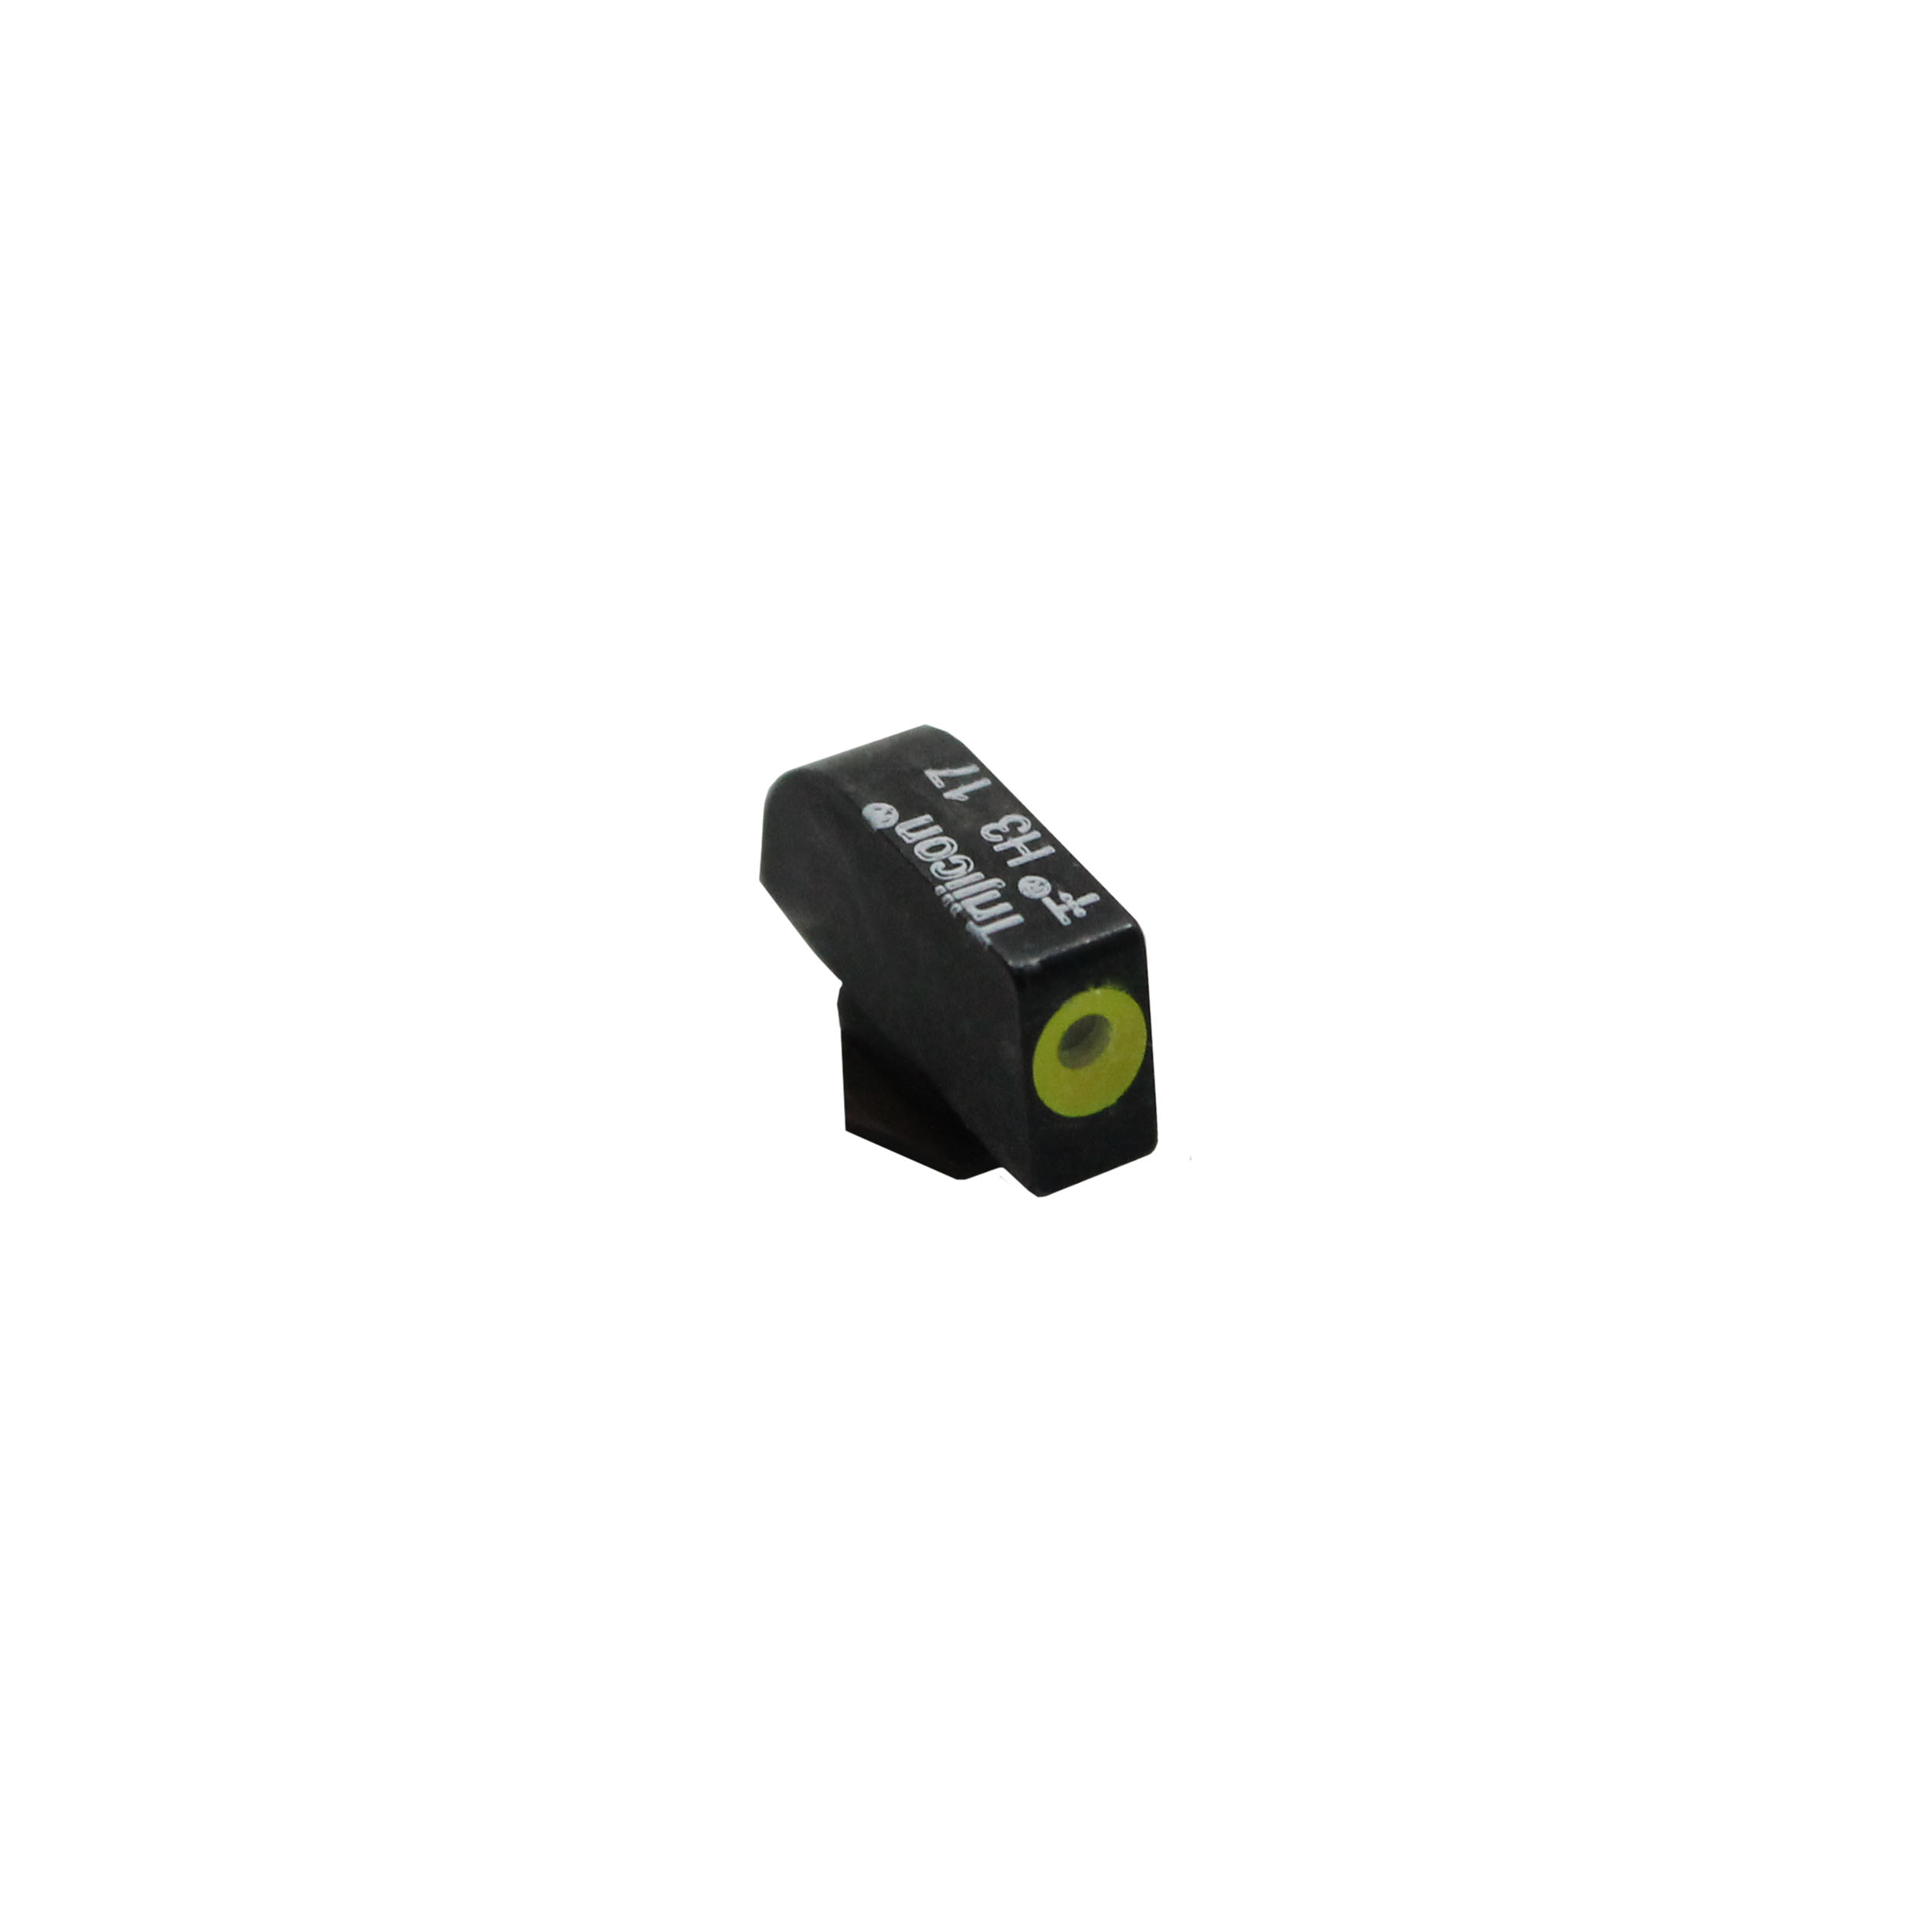 Trijicon HD XR Front Sight Glock Models 20-41, Yellow Front Outline Lamp by Trijicon